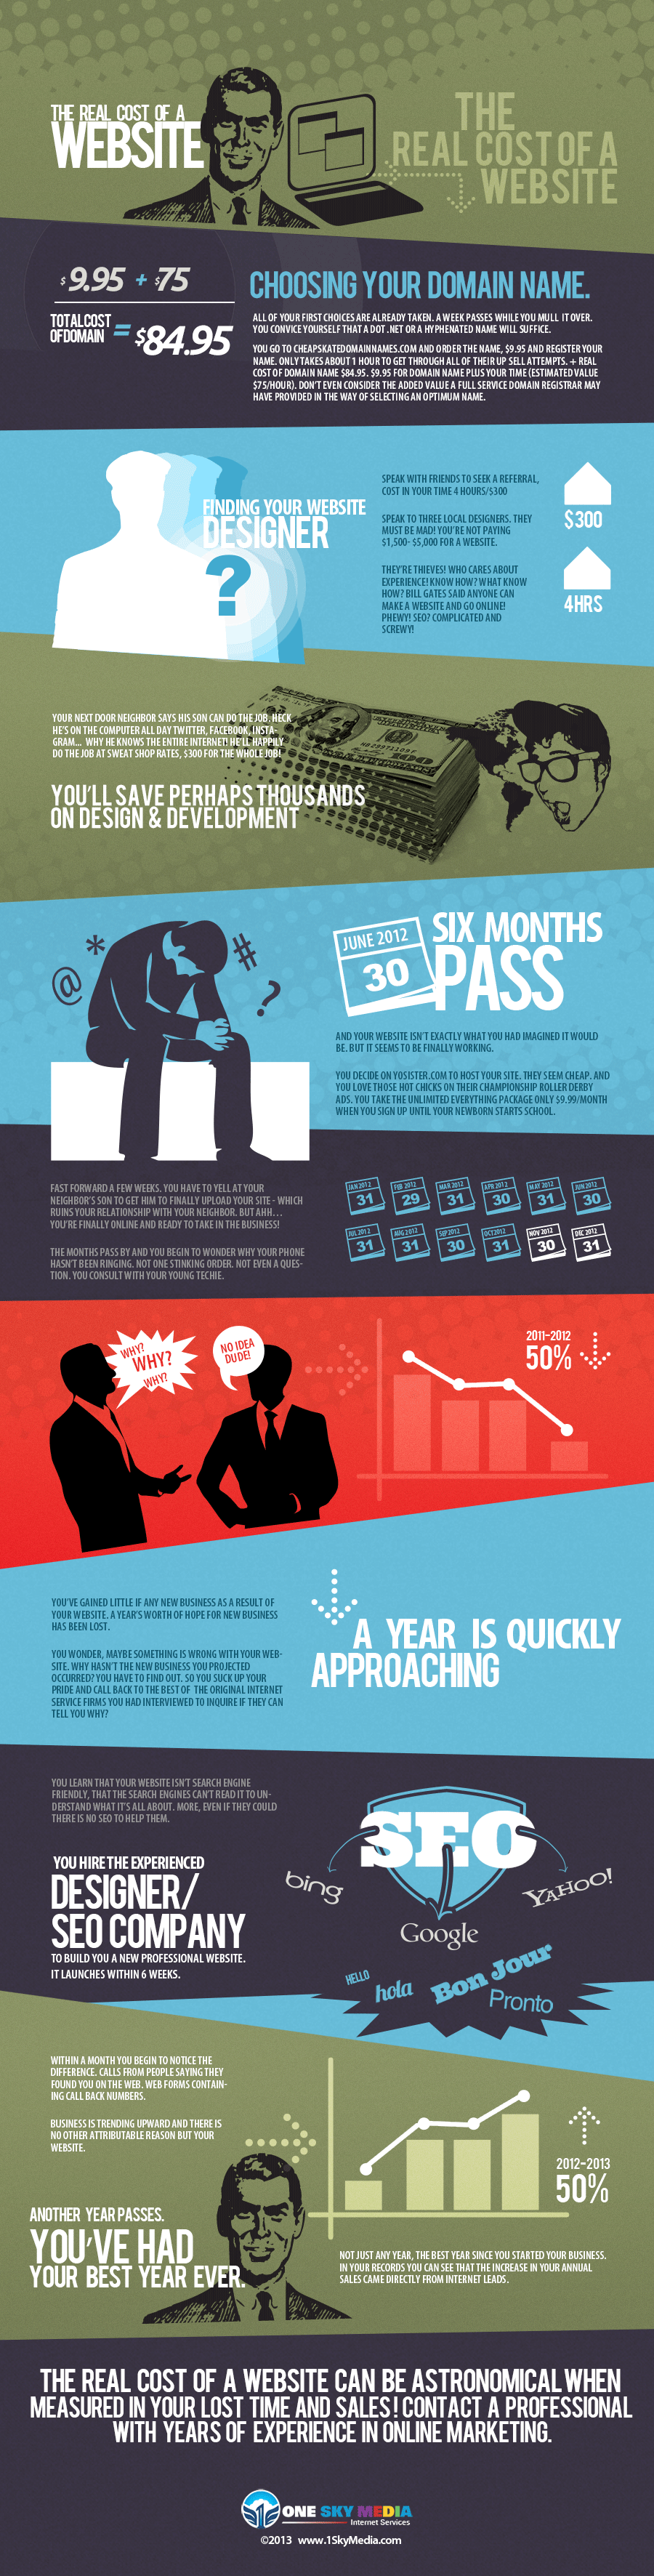 The real cost of a website design infographic.